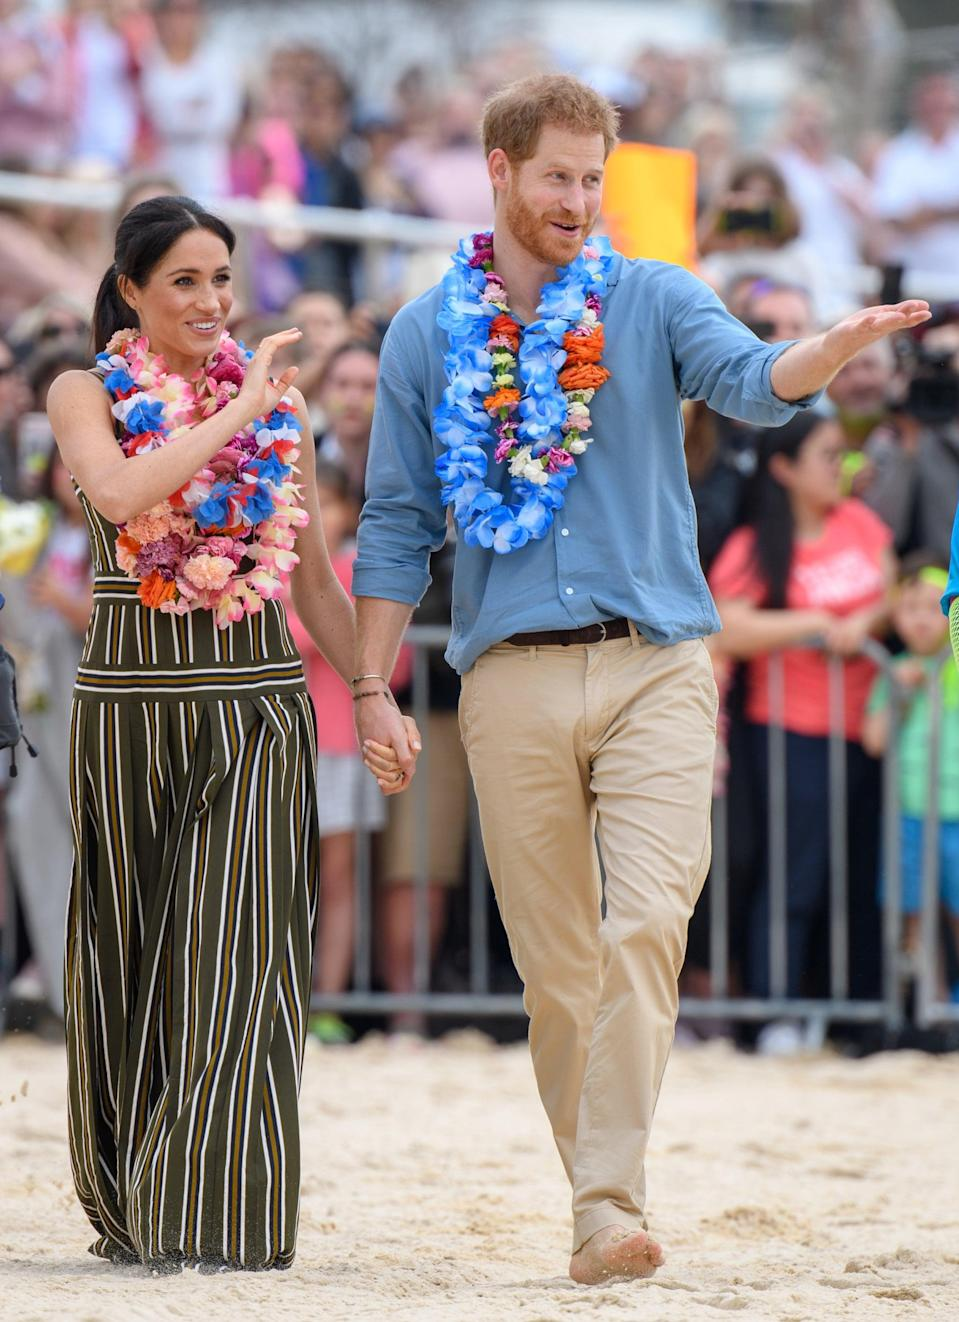 """<p>Meghan chose to wear this <a href=""""https://www.popsugar.com/fashion/Meghan-Markle-Martin-Grant-Dress-Australia-October-2018-45398045"""" class=""""link rapid-noclick-resp"""" rel=""""nofollow noopener"""" target=""""_blank"""" data-ylk=""""slk:casual striped maxi dress by Martin Grant"""">casual striped maxi dress by Martin Grant</a> to visit Bondi Beach in Sydney during their royal tour of Australia, Fiji, Tonga, and New Zealand in October 2018. </p>"""